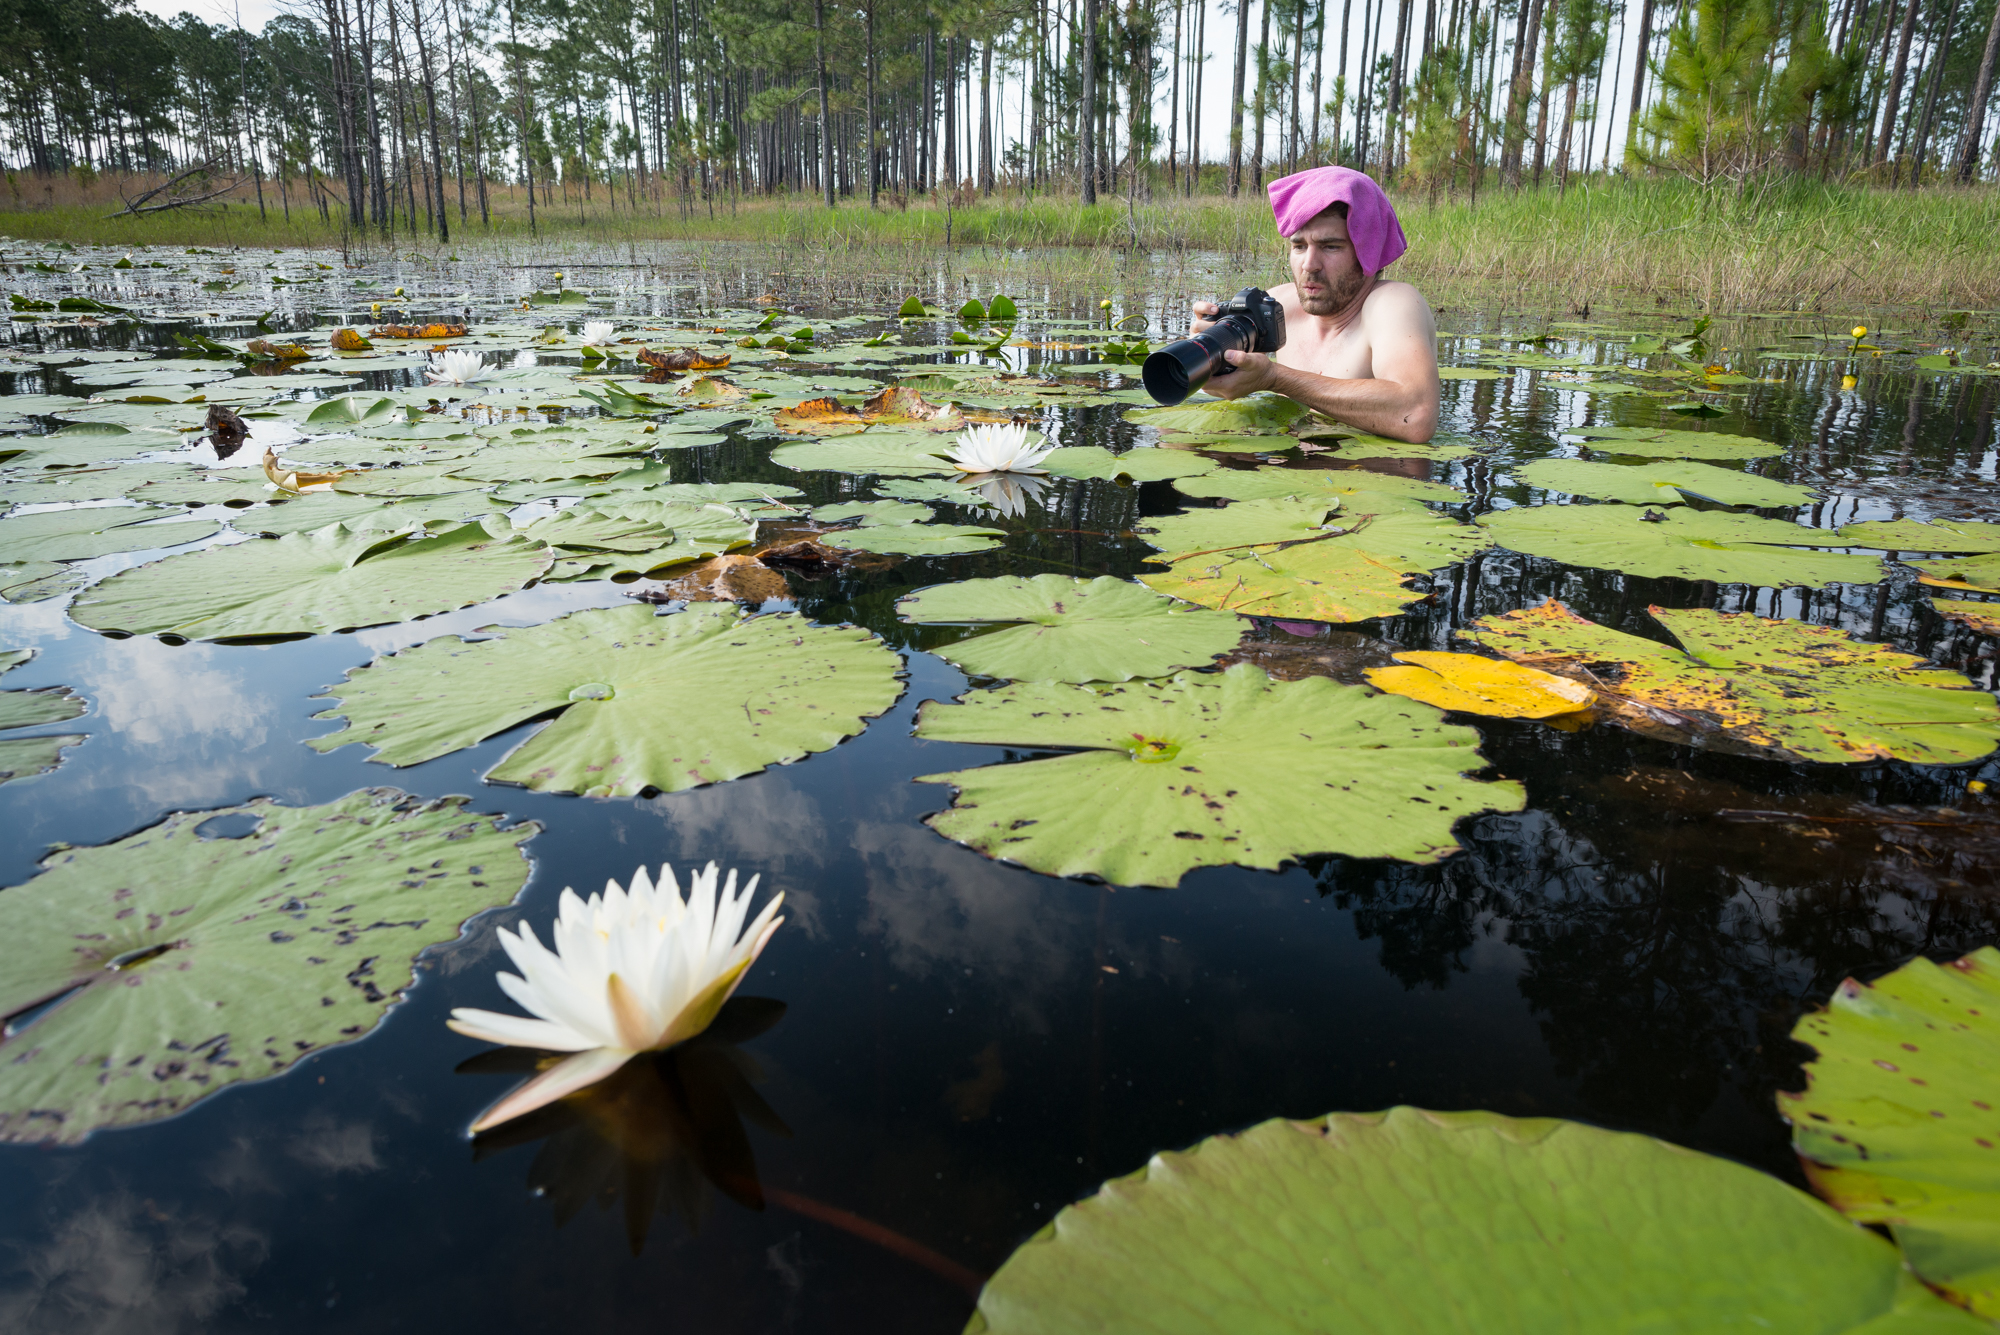 Alex wades into the swamp to capture macro images of the water lilies.